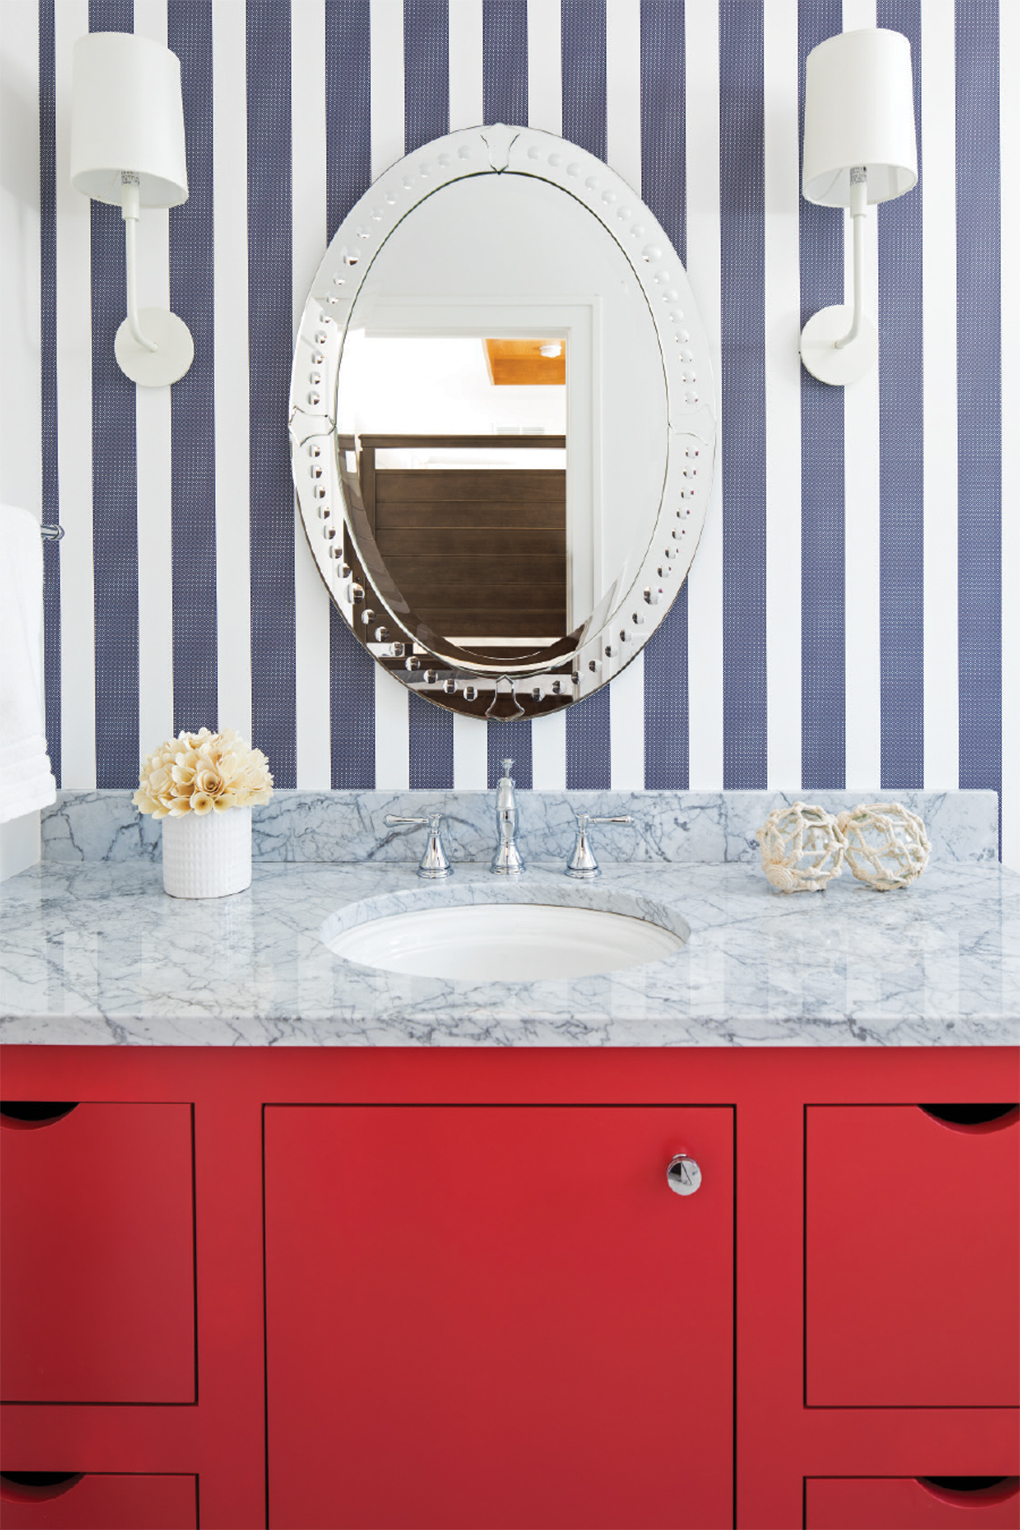 A bathroom with a red vanity and blue-striped wallpaper.